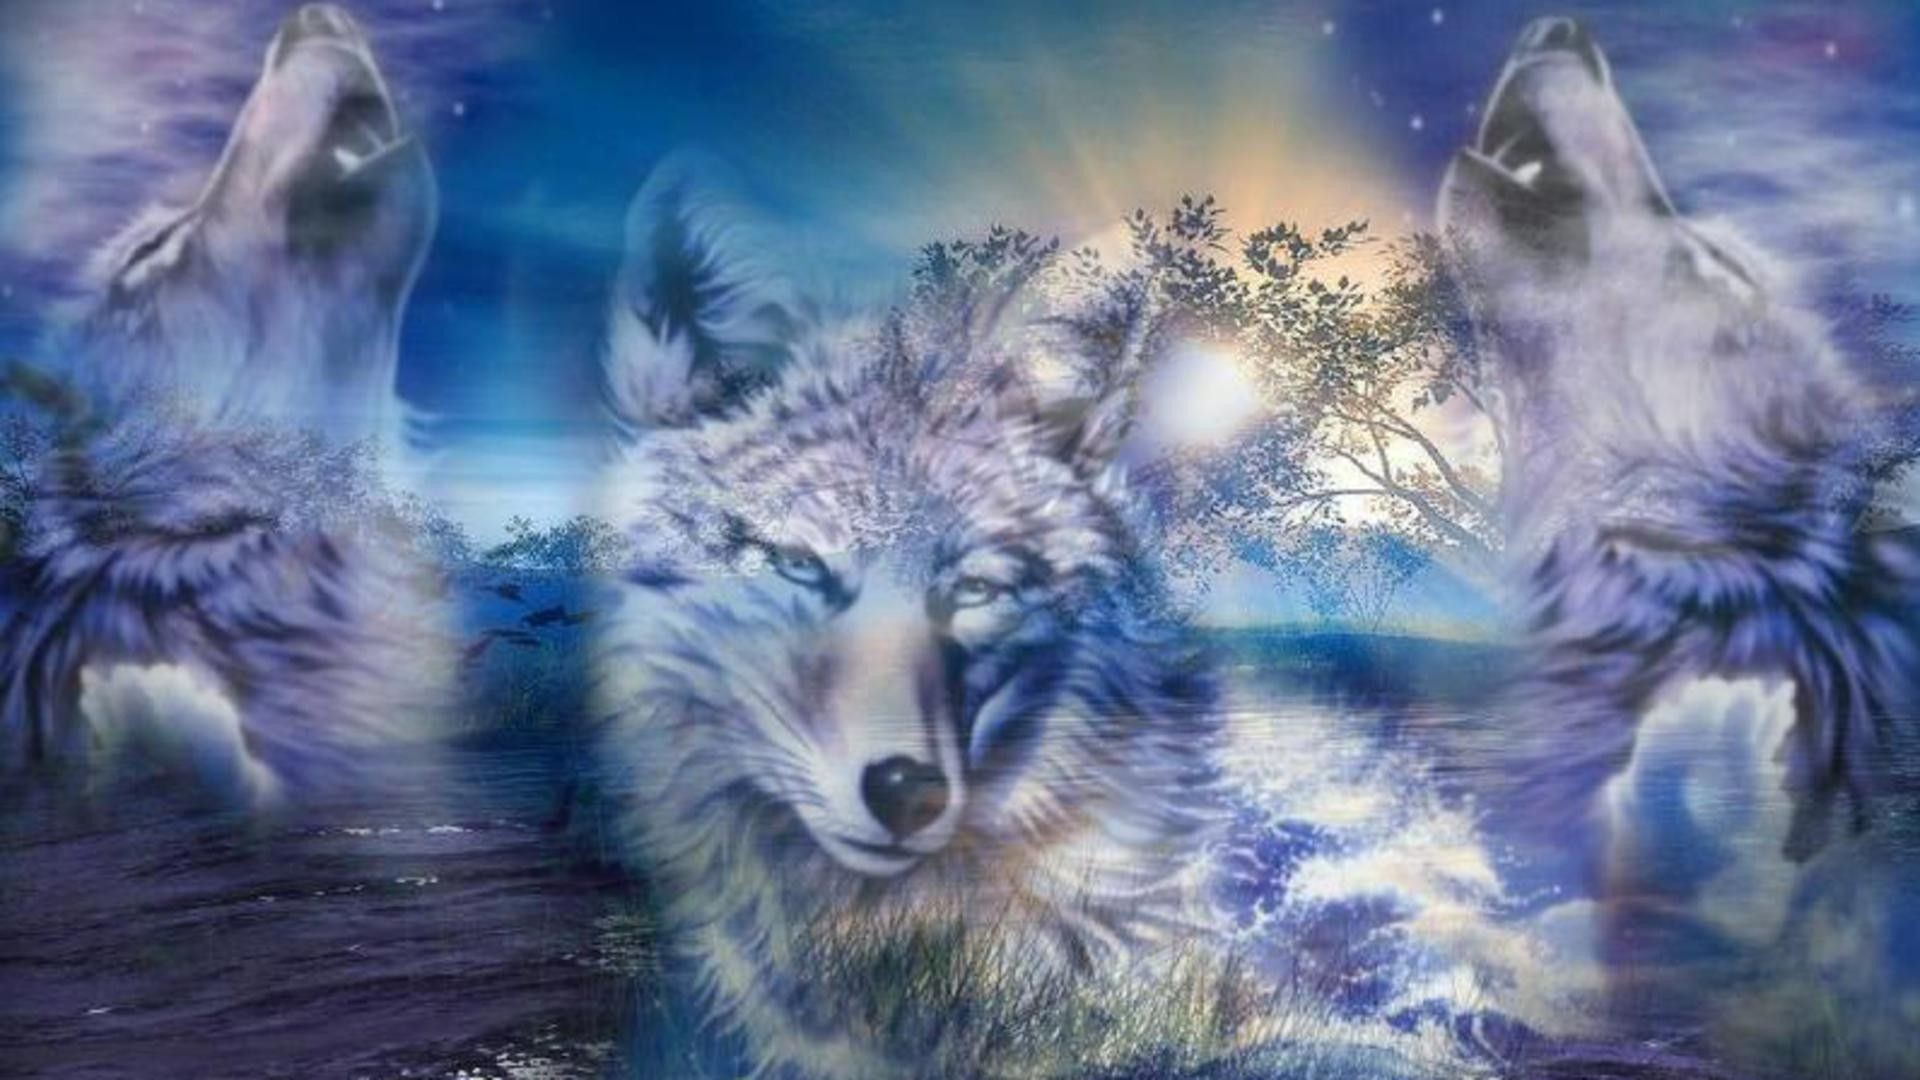 1920x1080 Wolf Pictures | All About Wolves Full HD 1080p Wolf Wallpapers HD, Desktop  ...